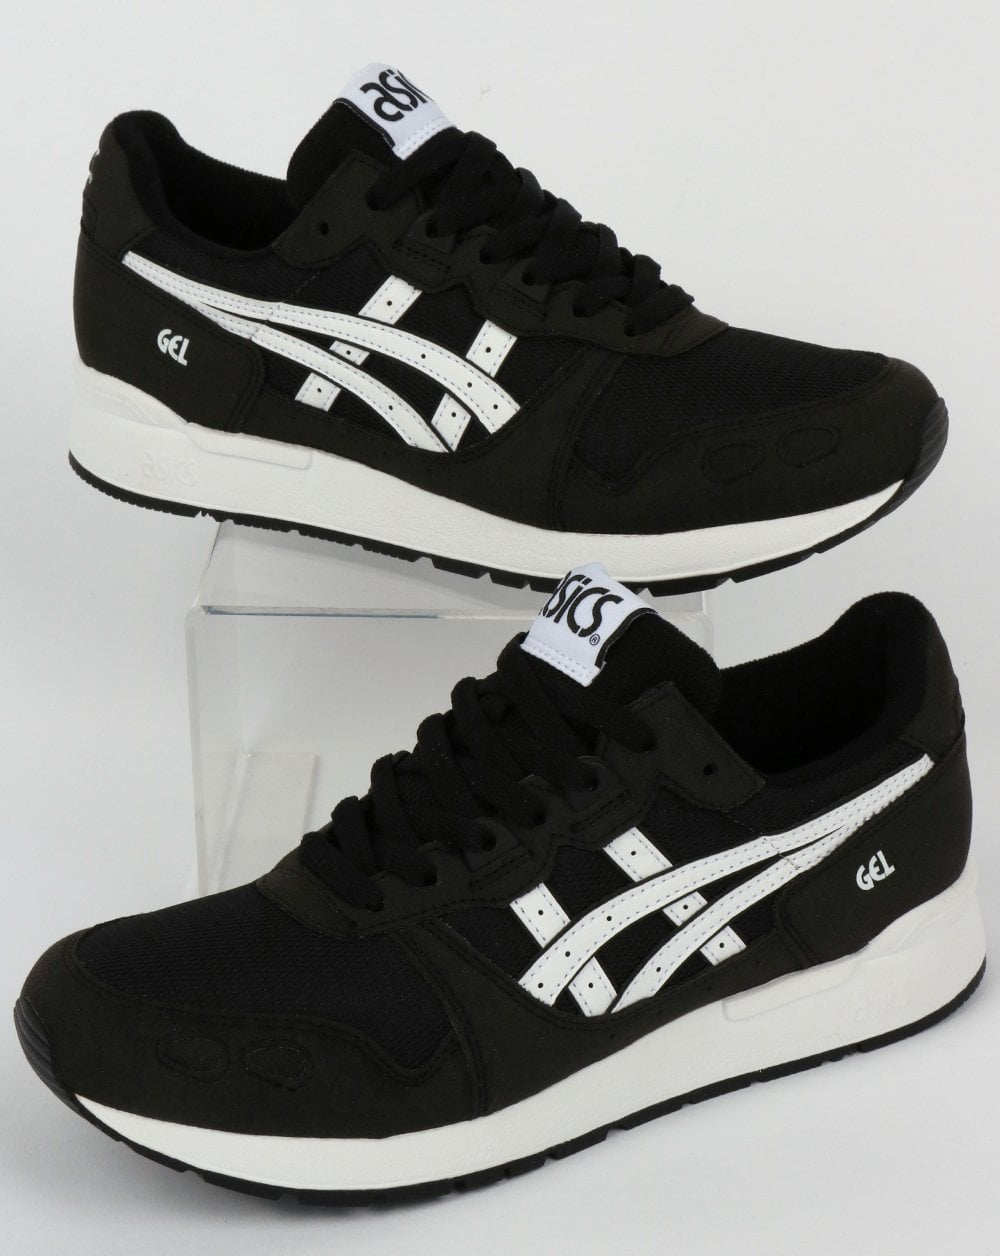 best service 09074 65961 Asics Gel-Lyte Trainers Black/White